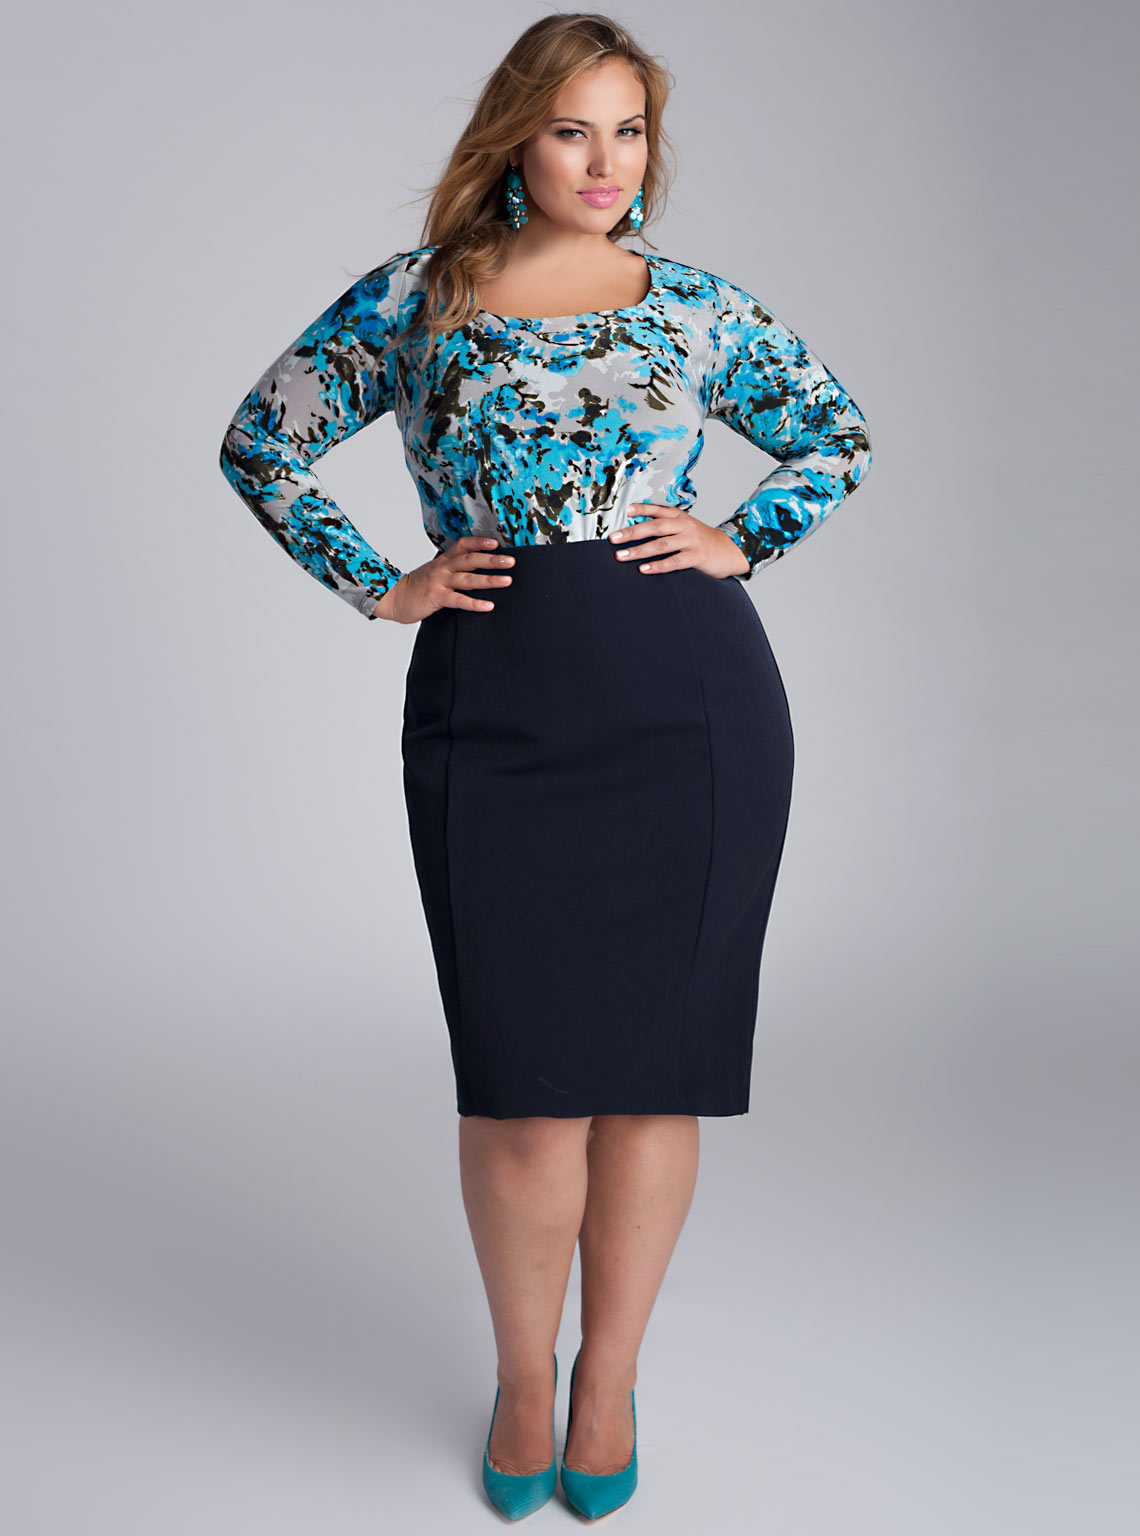 Plus Size Skirts: Look Perfect